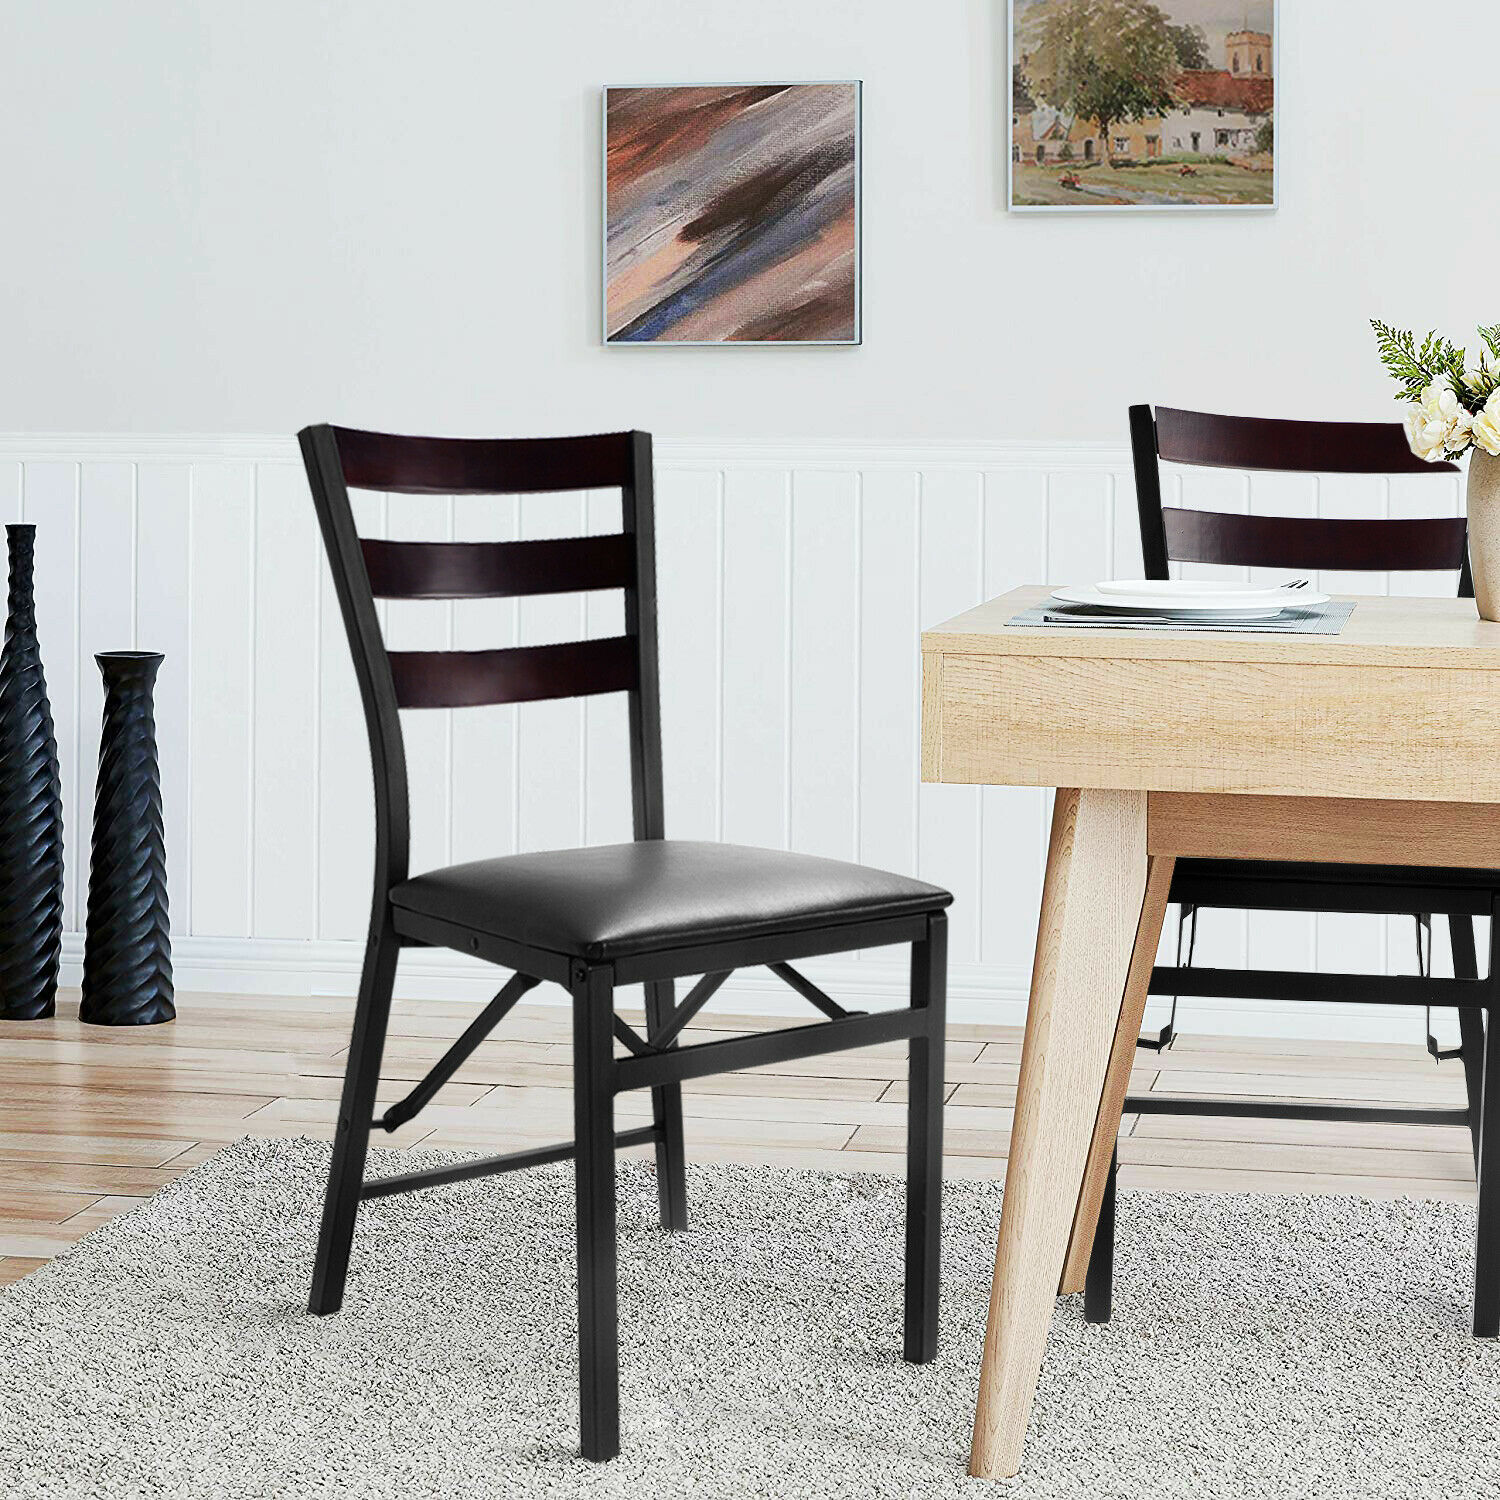 Gymax 2PC Folding Chair Home Restaurant Furniture - image 5 of 8